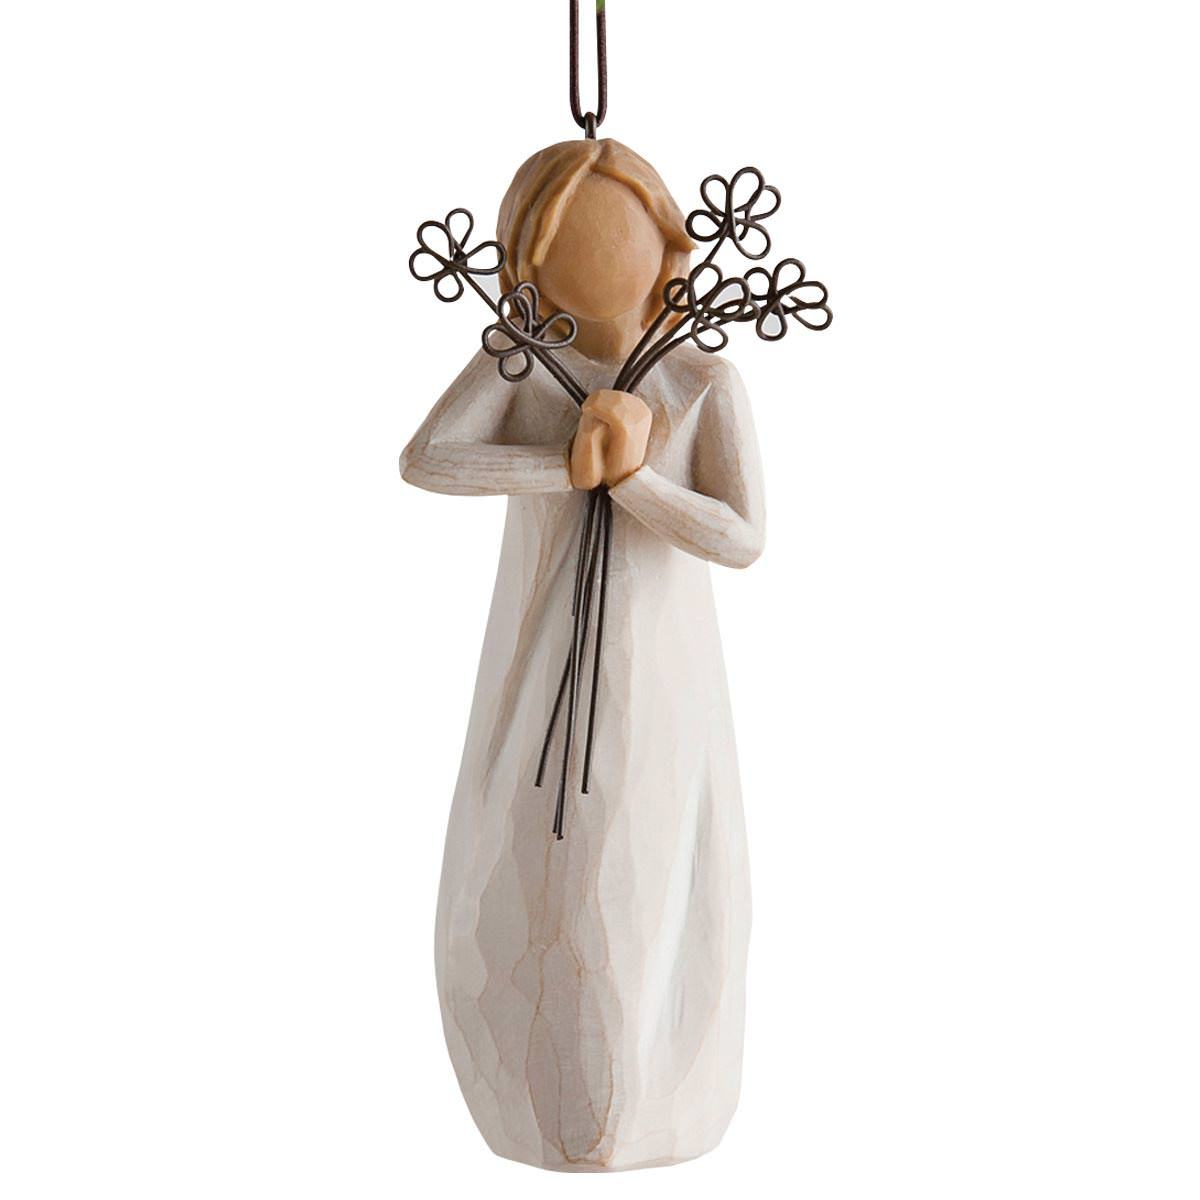 Willow Tree Friendship Ornament